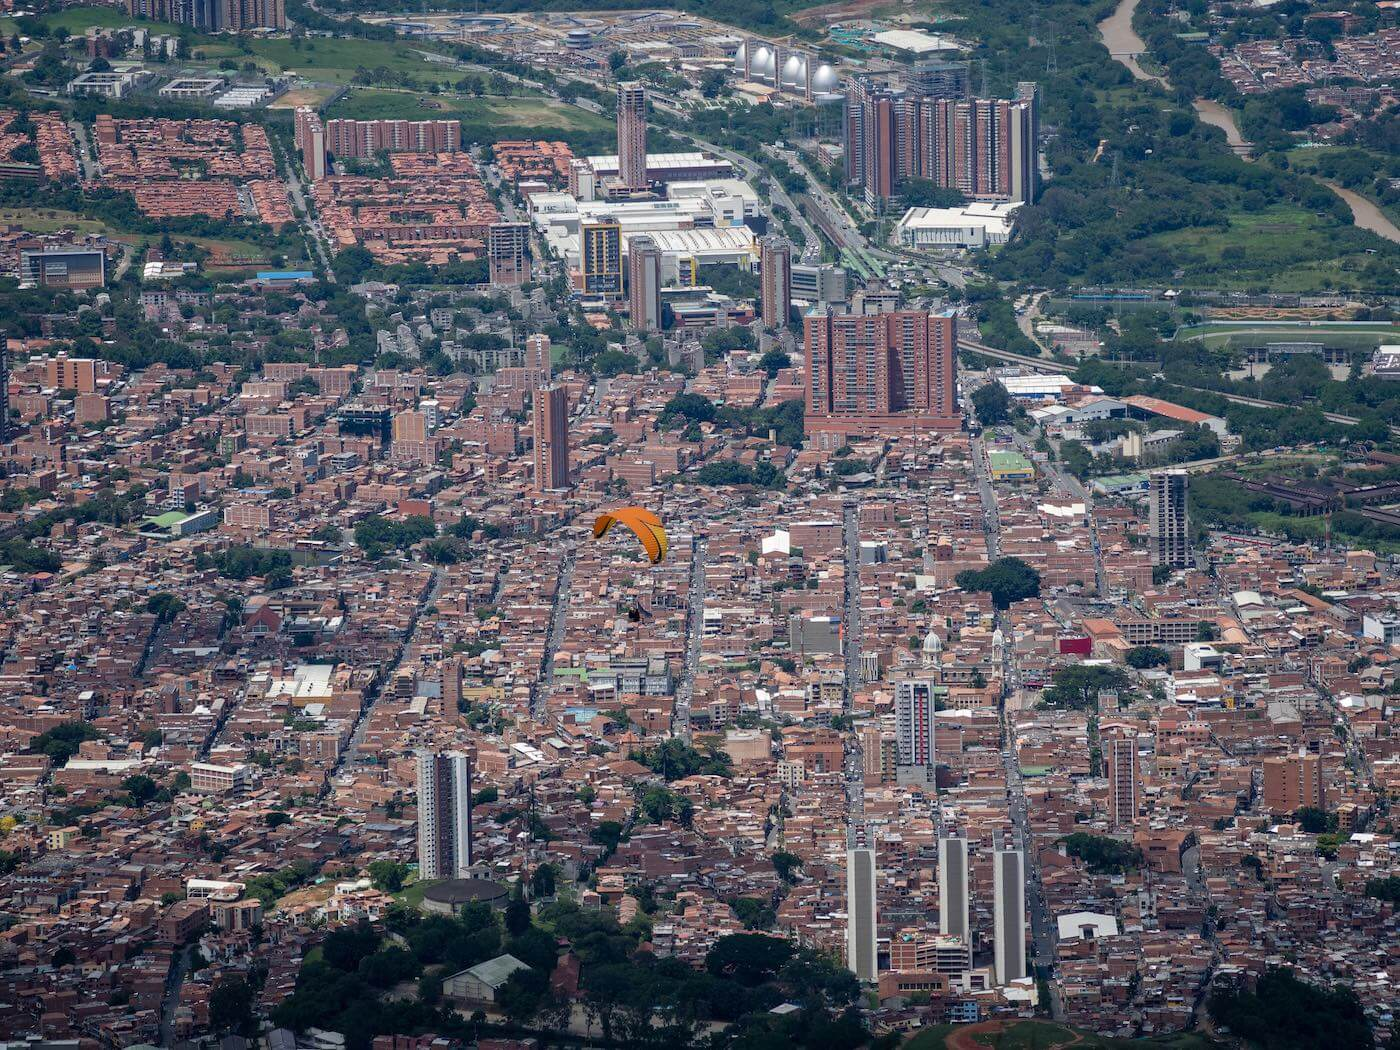 My paraglider with the city of Medellin below